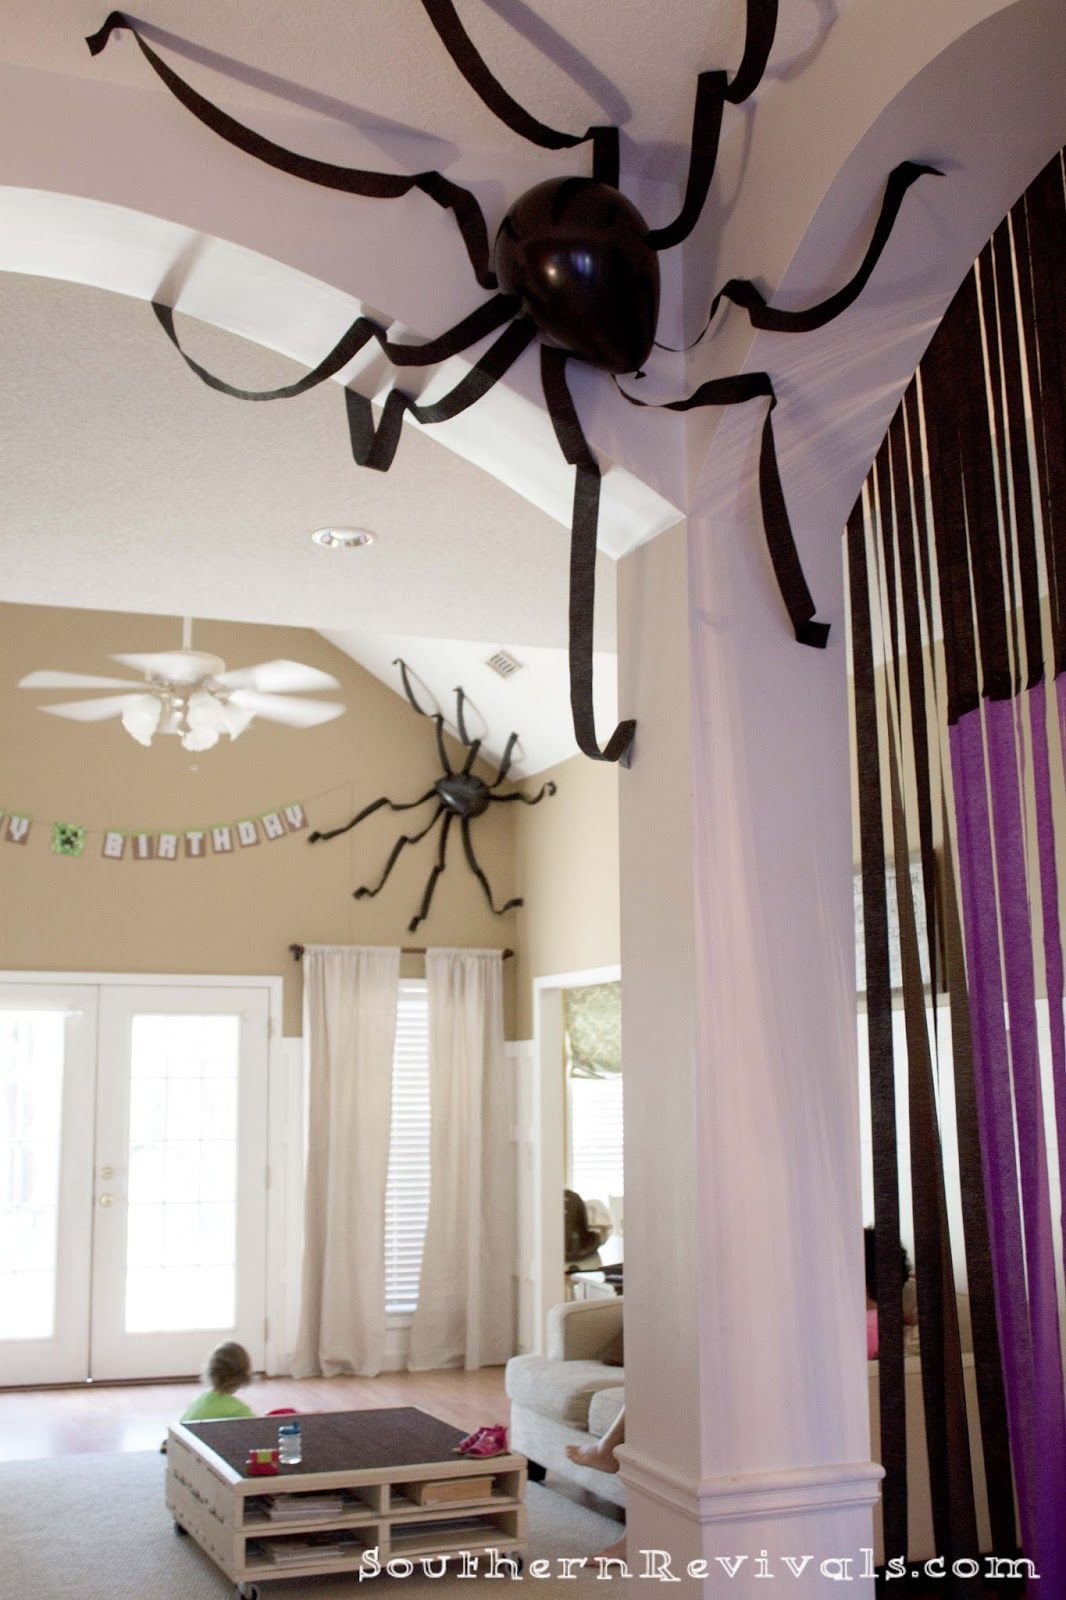 50 interior decorations that take Halloween to the next level - home decors